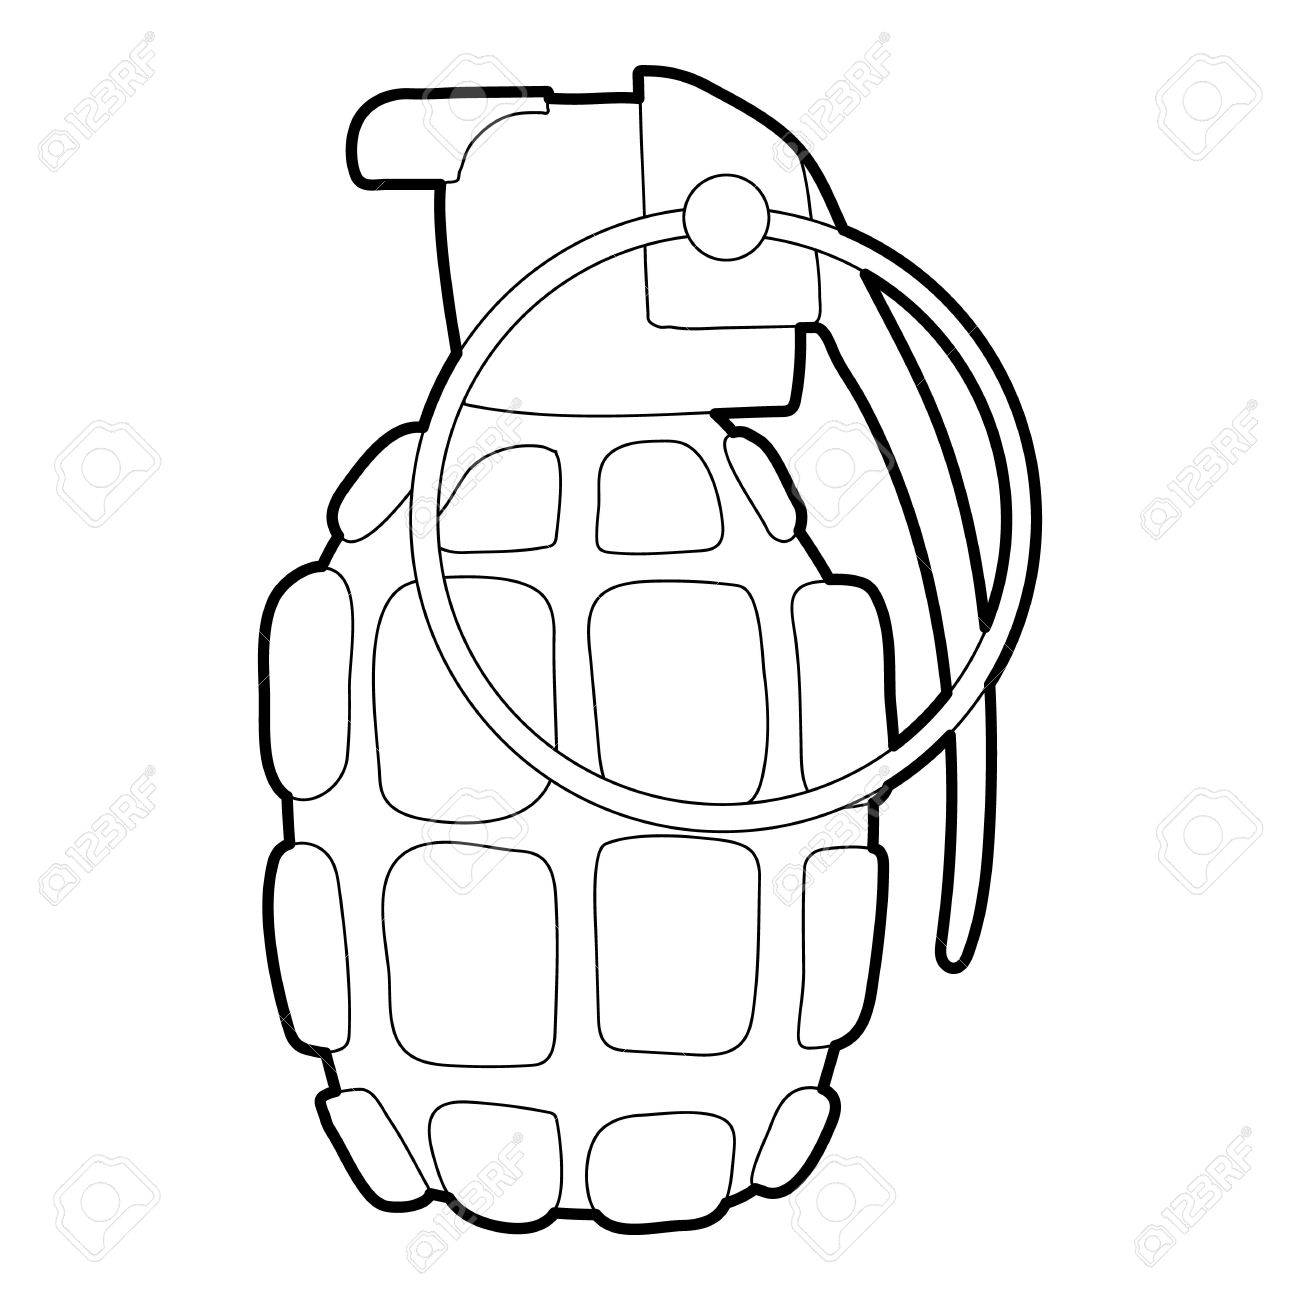 hand grenade icon outline illustration of hand grenade vector rh 123rf com grenade vector free grenade vector free